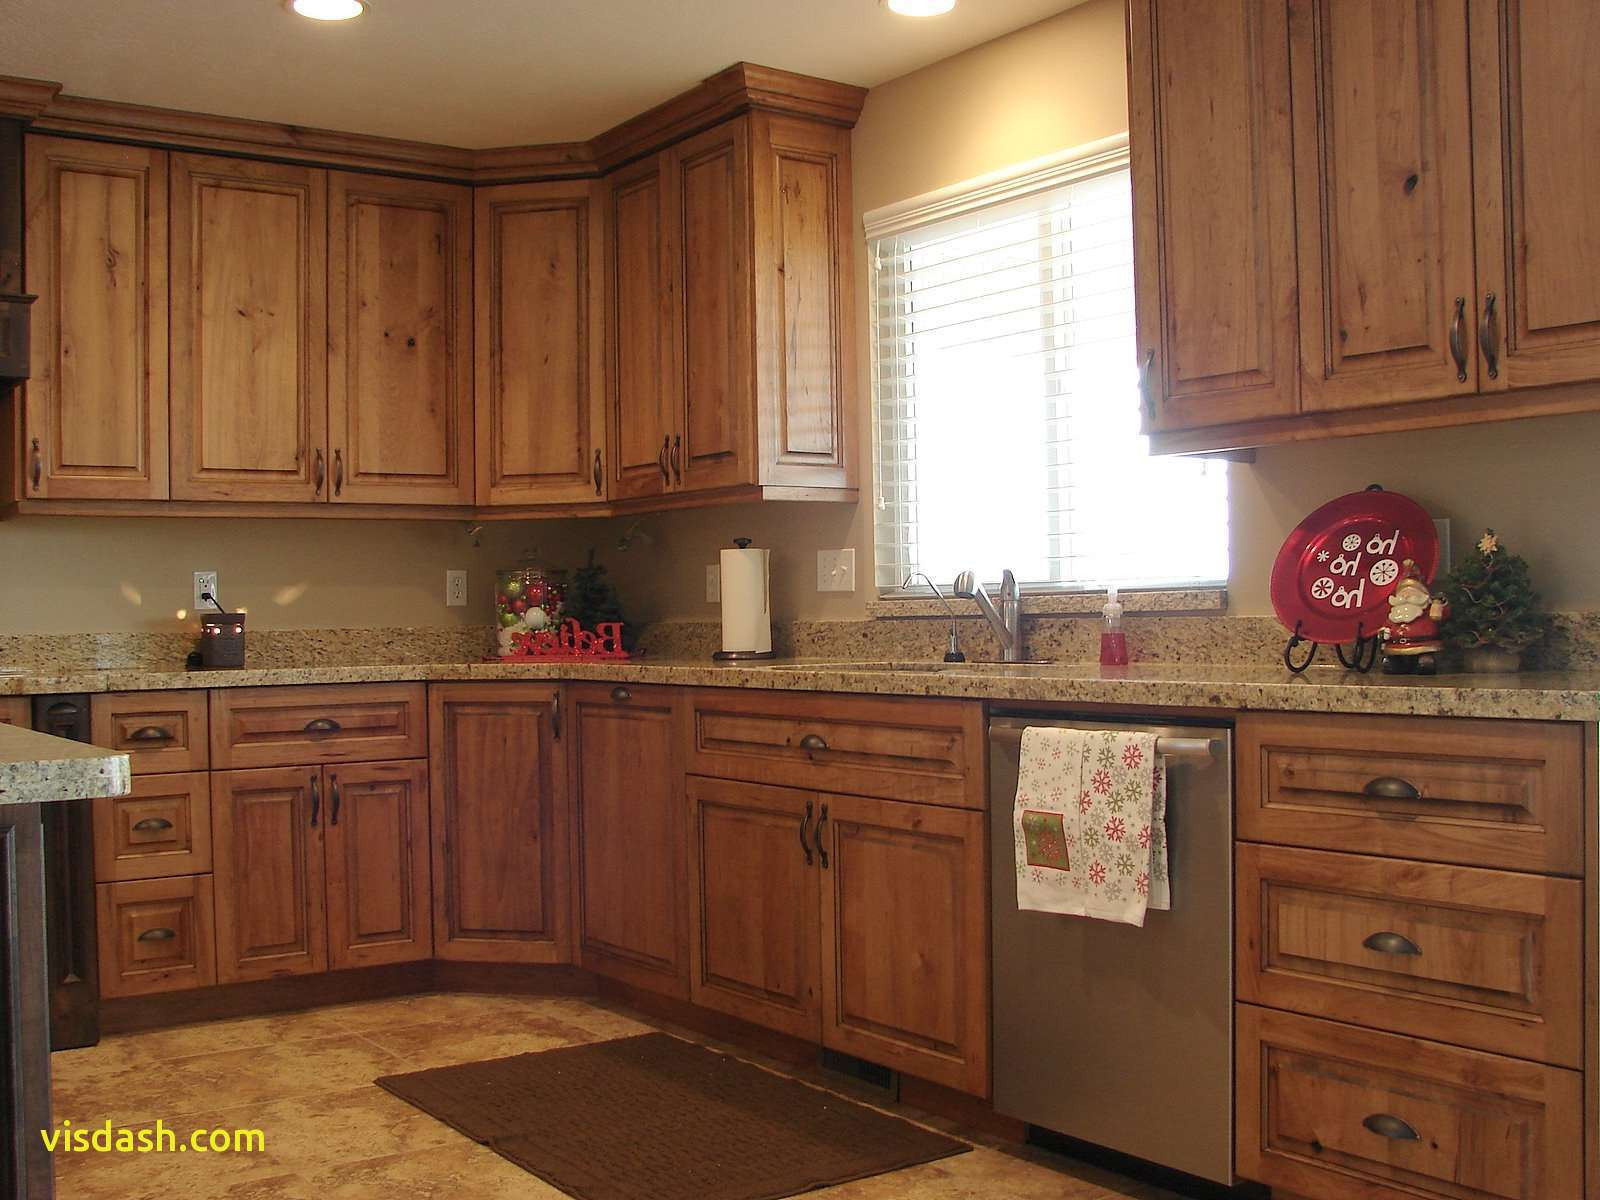 12 Recommended Light Hardwood Floors with Dark Cabinets 2021 free download light hardwood floors with dark cabinets of kitchen colors with cherry cabinets inspirational kitchen ideas for kitchen colors with cherry cabinets inspirational kitchen ideas light wood cab